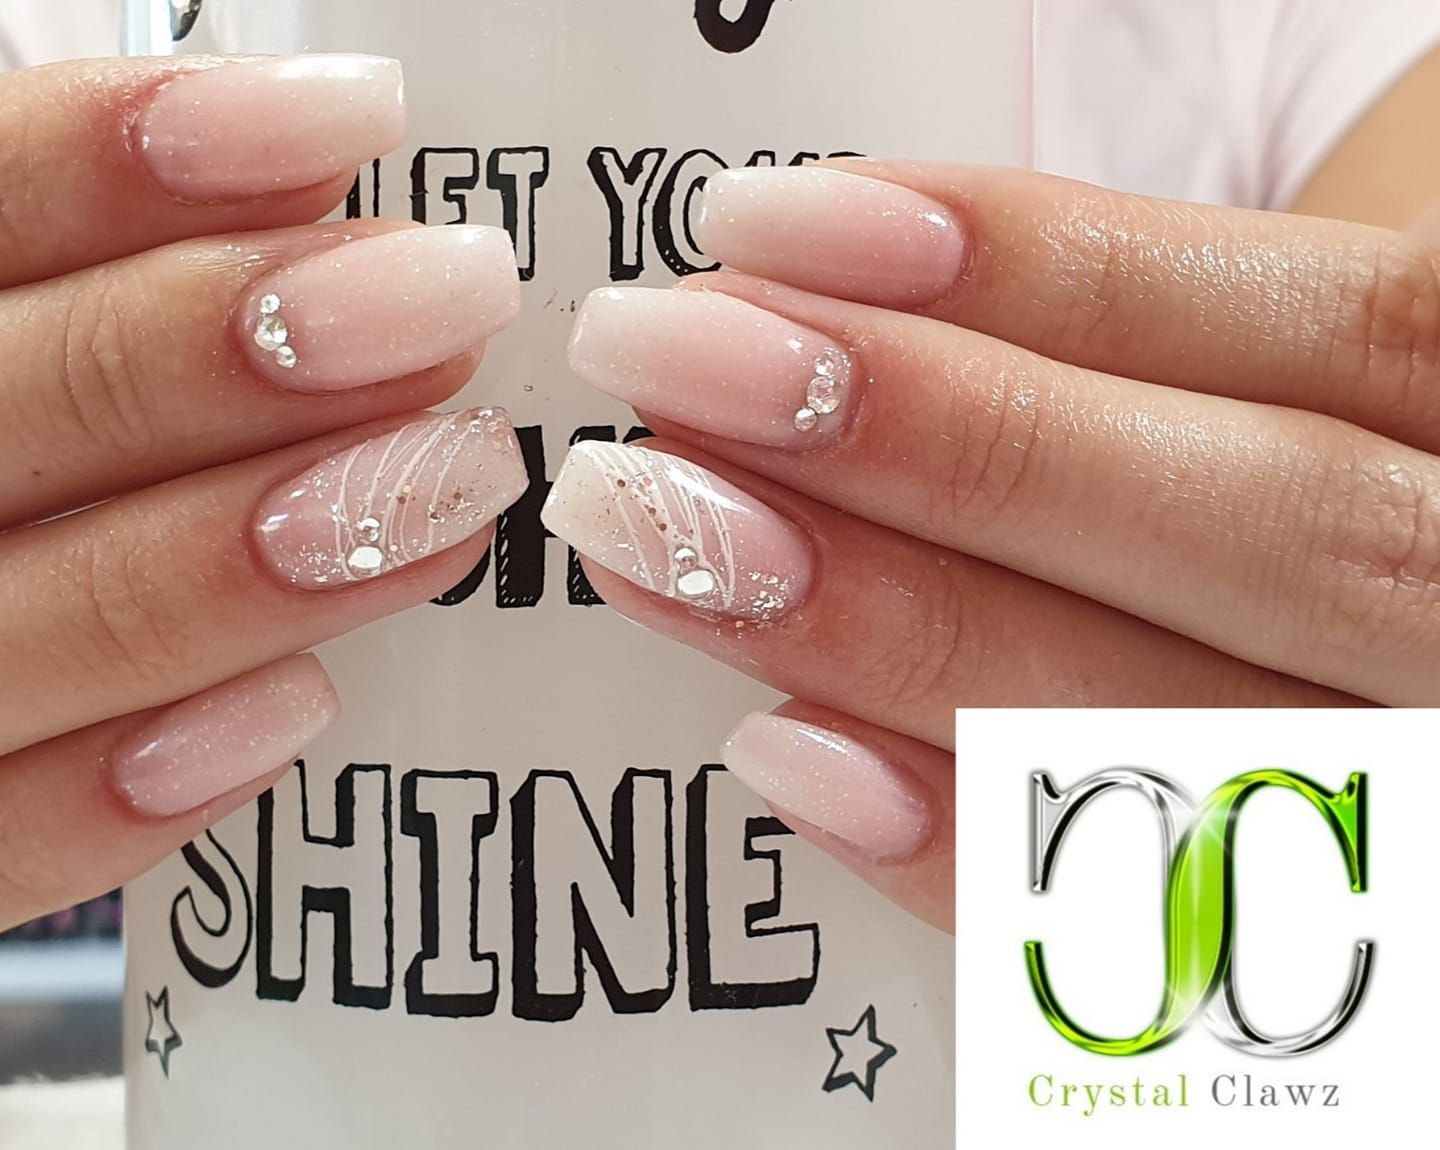 Baby Boomers With Added Glitter Diamond Gel And Spider Gel Art And Genuine Ab Crystals Simple Yet Stunning Crys Kristall Nagel Stone Nails Nageldesign Lila